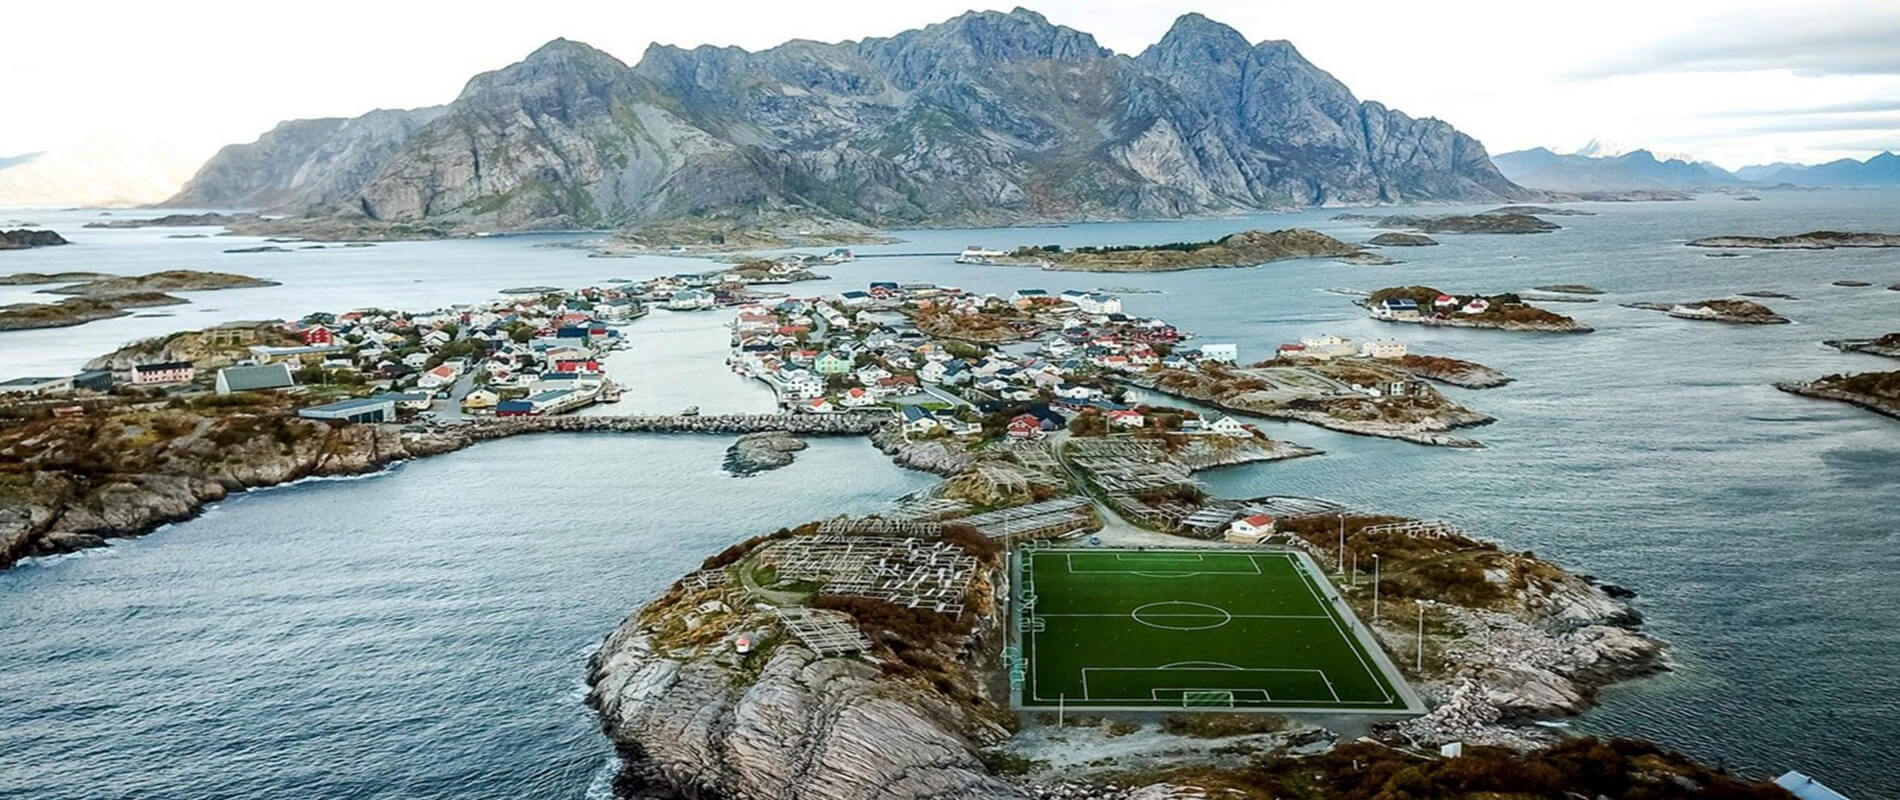 Henningsvaer Stadion, the Most Spectacular Stadium in the World